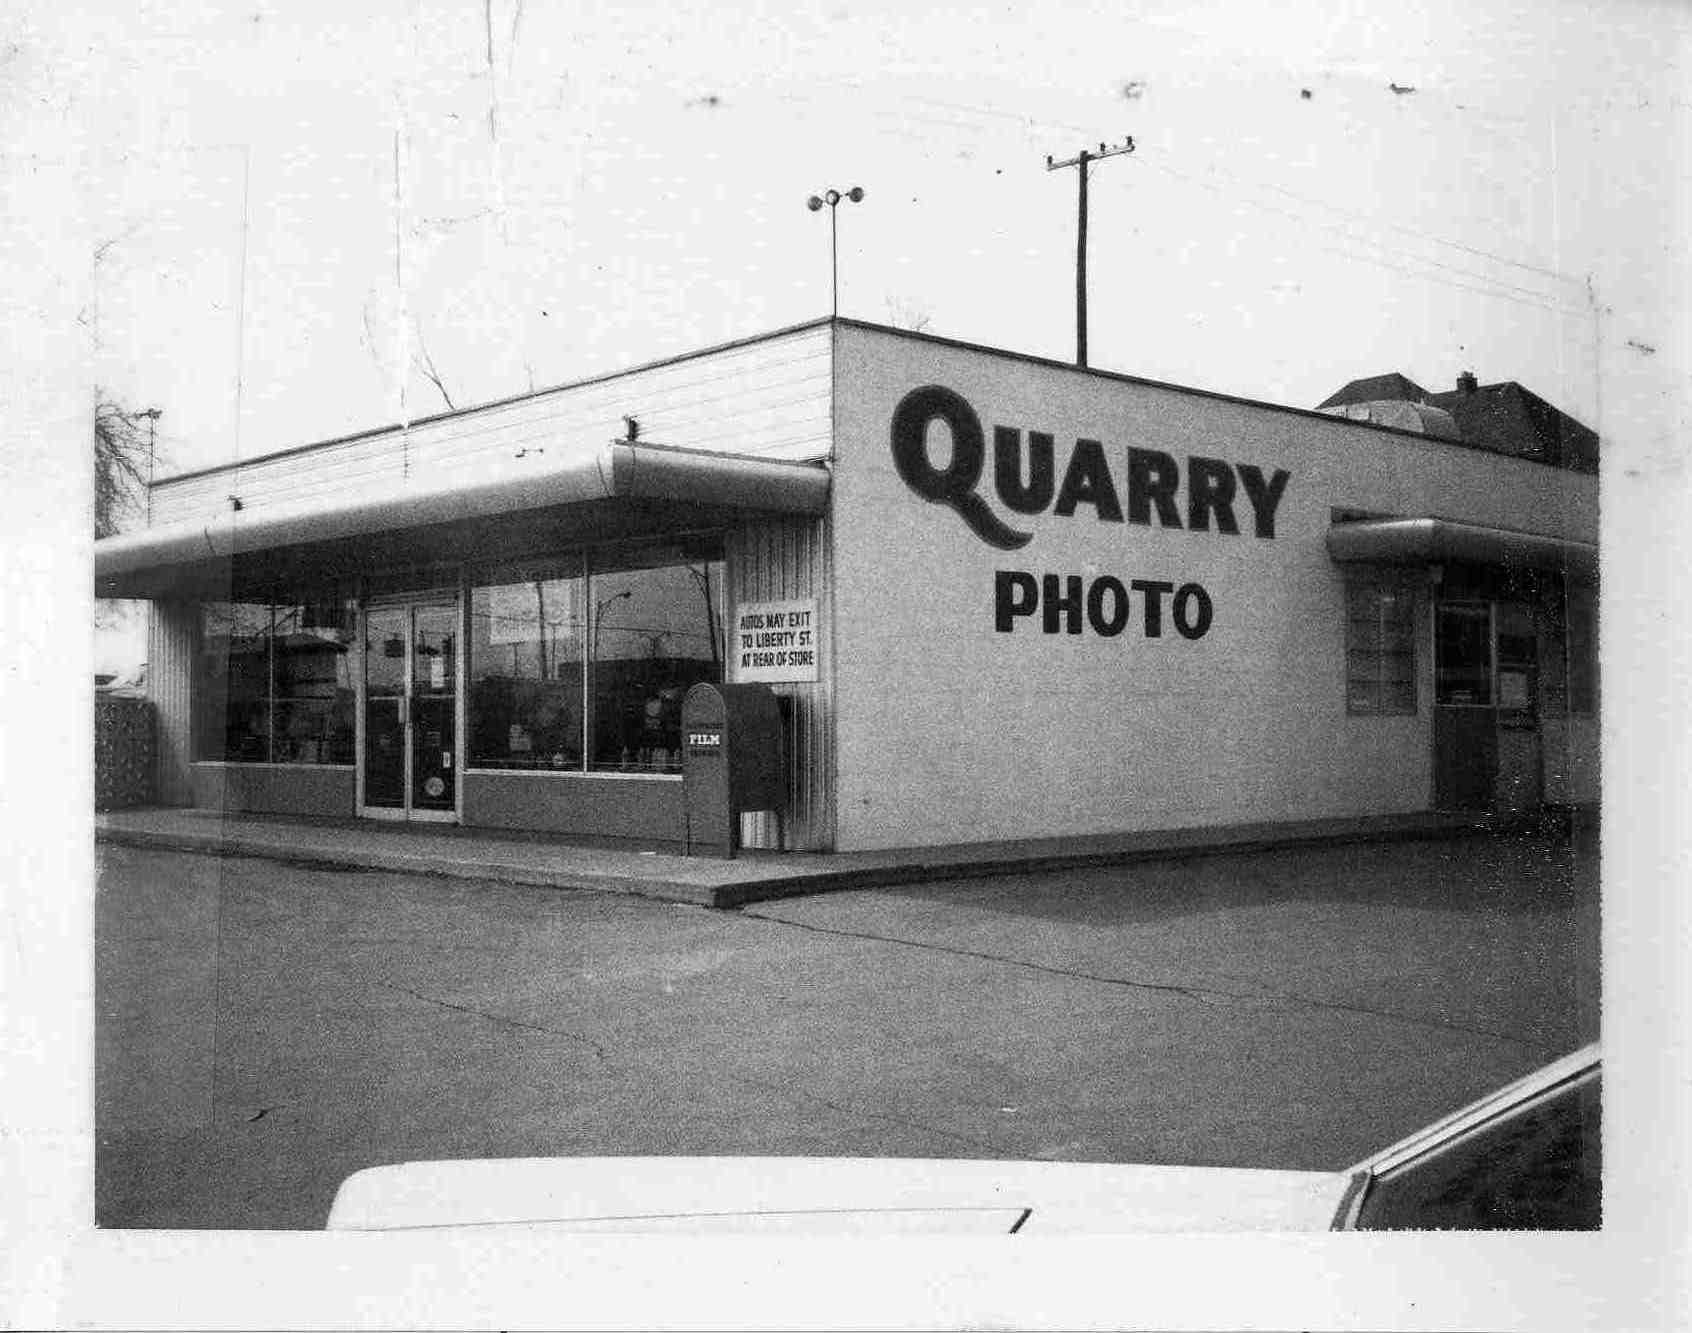 Quarry Photo, 1972 image